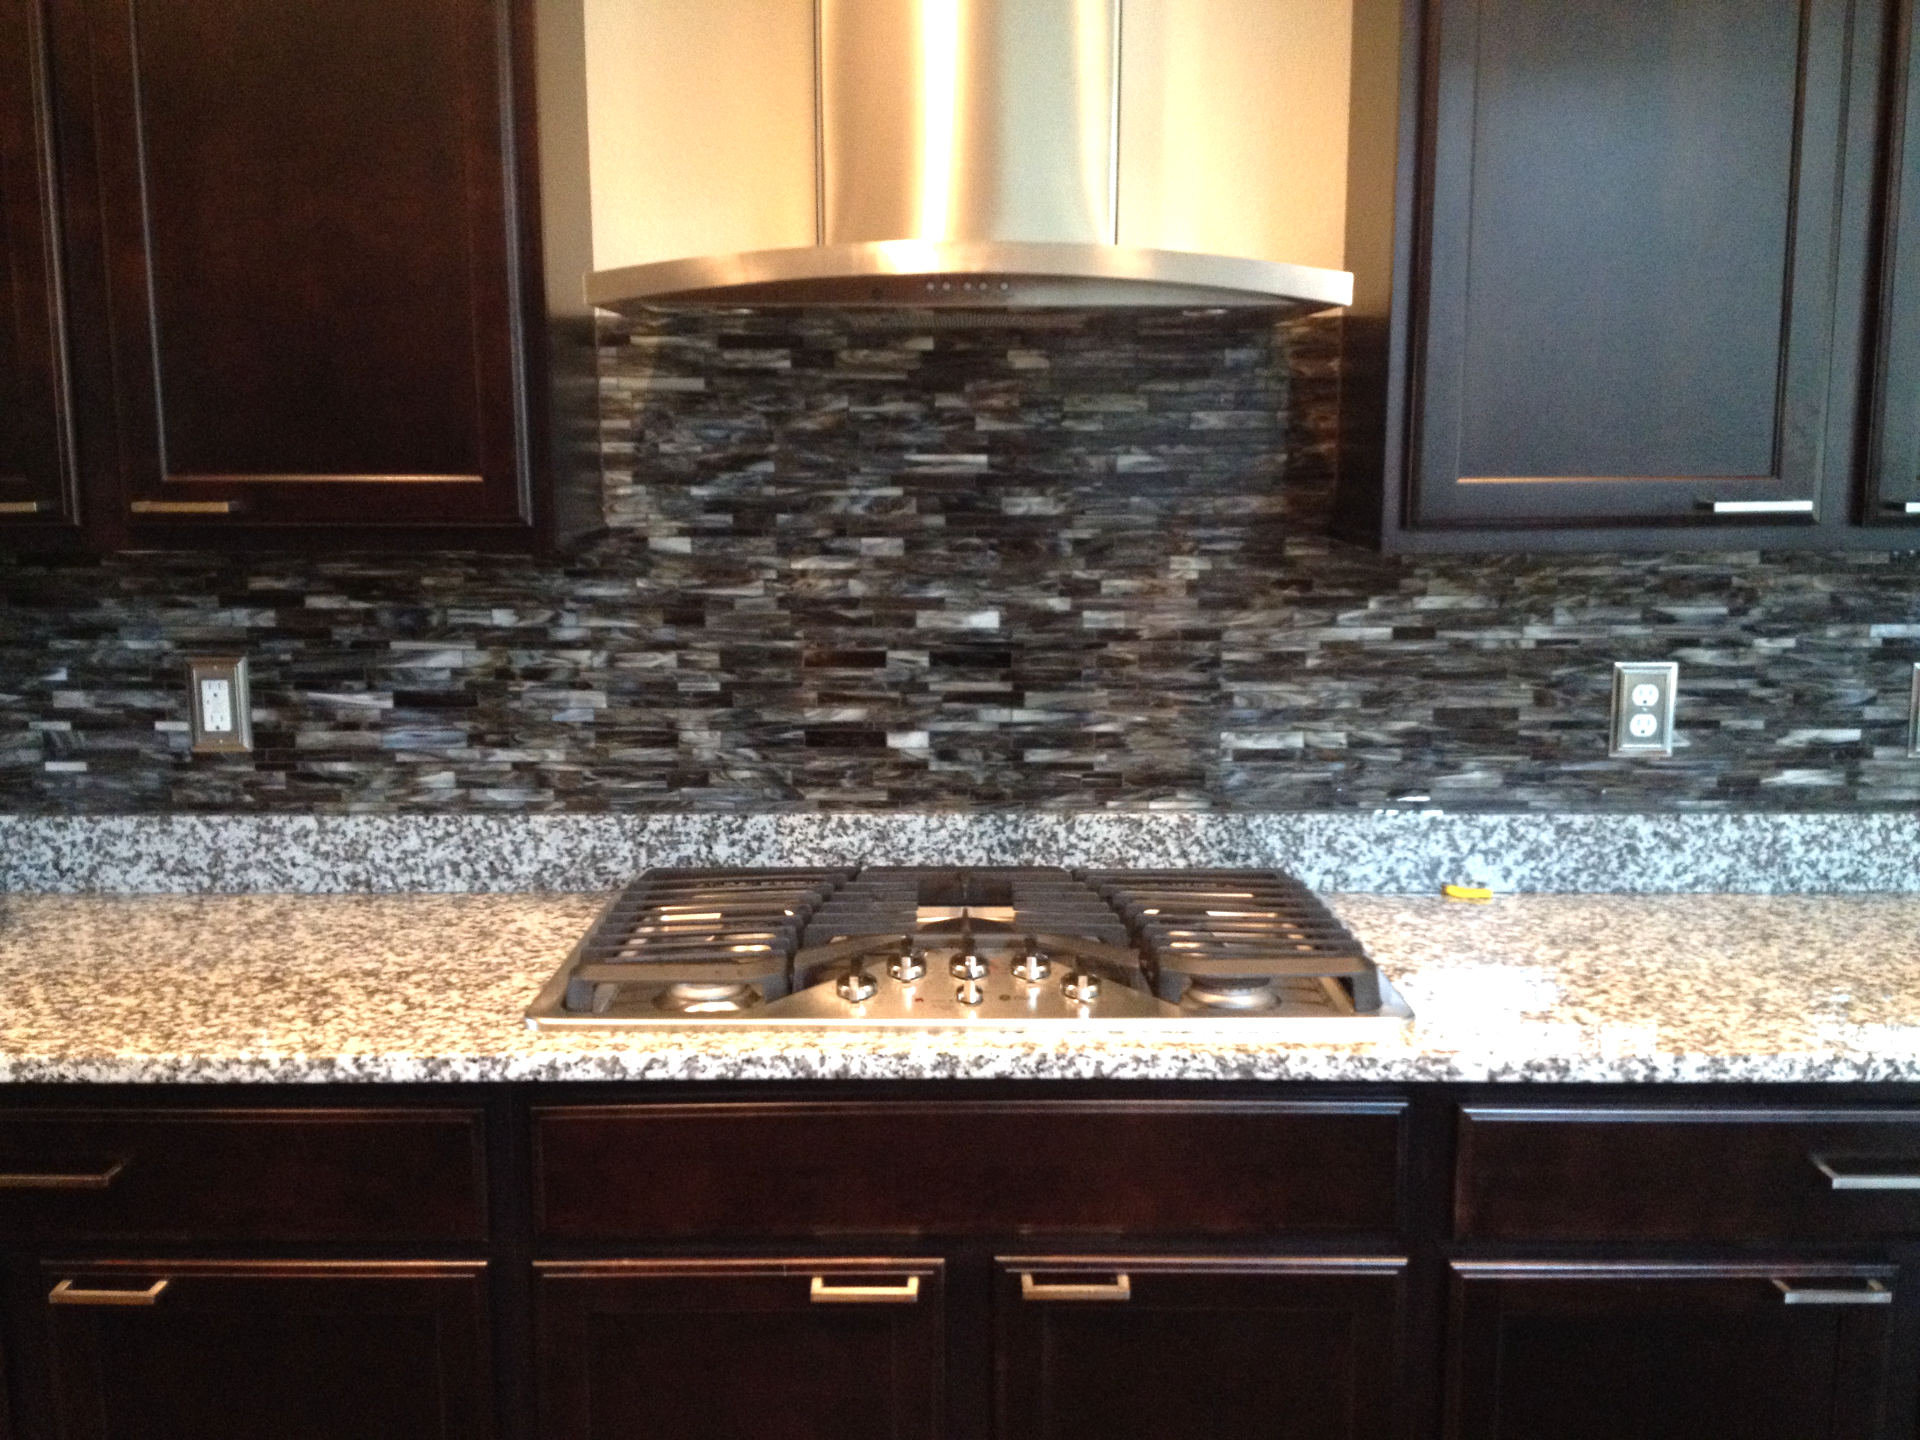 Tile back splash A2